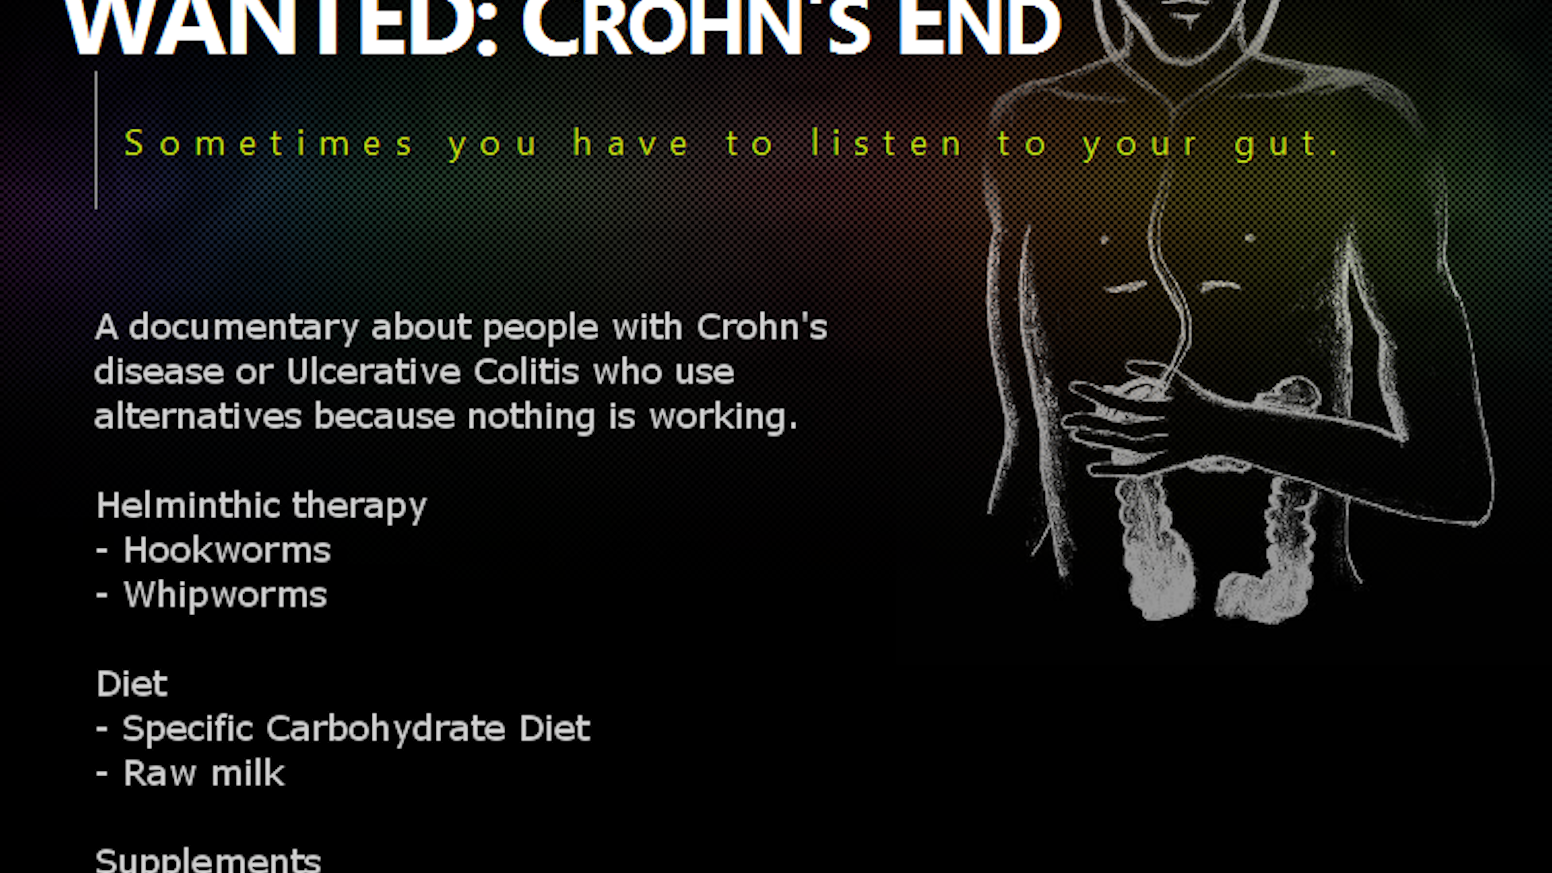 WANTED: Crohn's End is a documentary about people with Crohn's disease or Ulcerative Colitis who use controversial alternatives when nothing else is working.